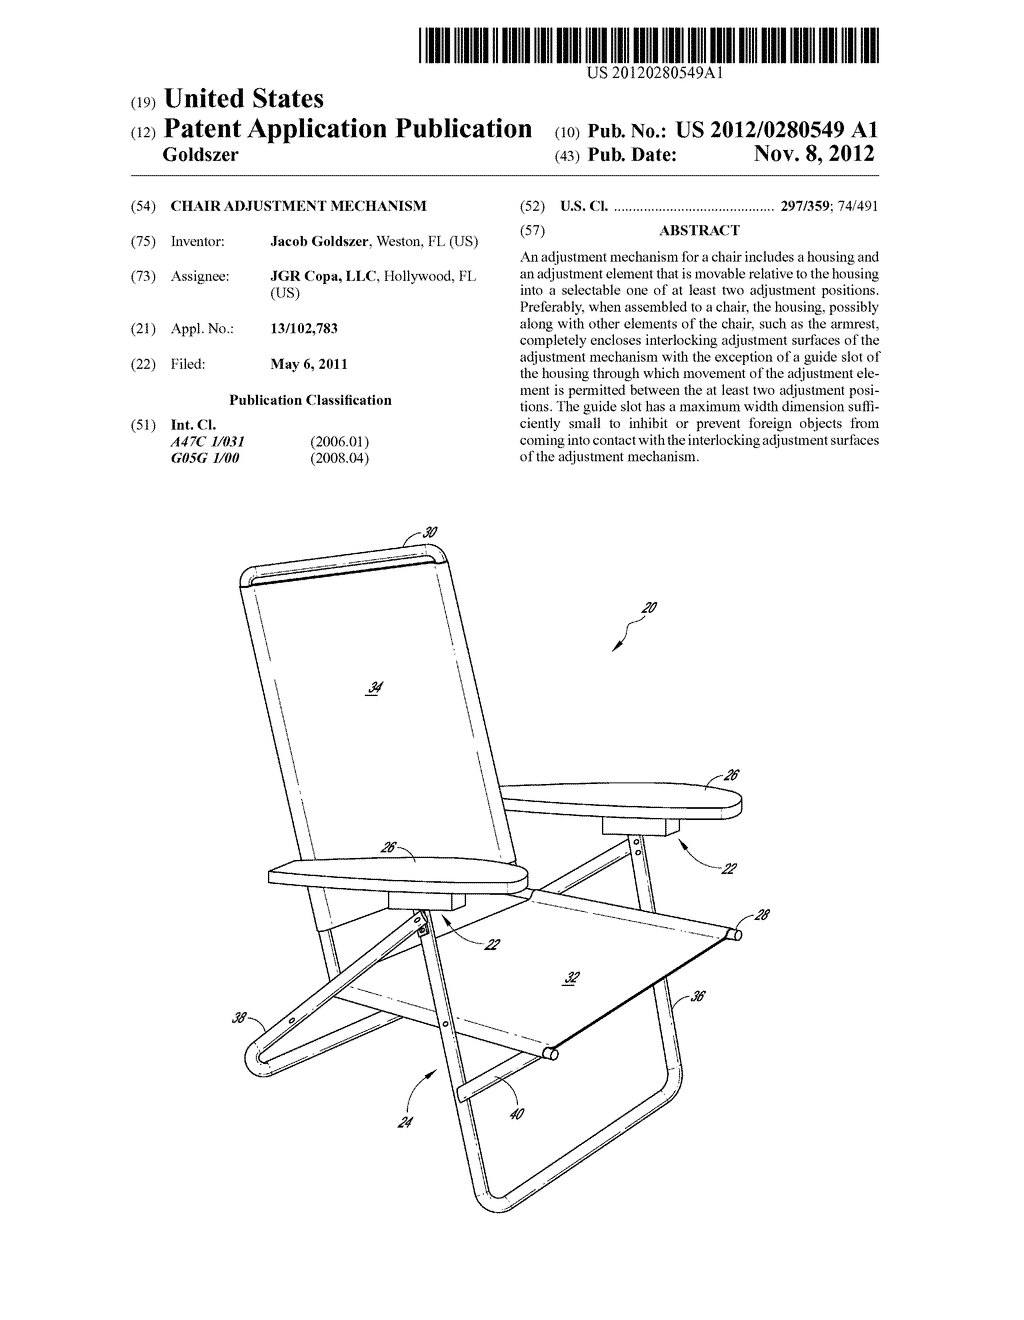 CHAIR ADJUSTMENT MECHANISM - diagram, schematic, and image 01